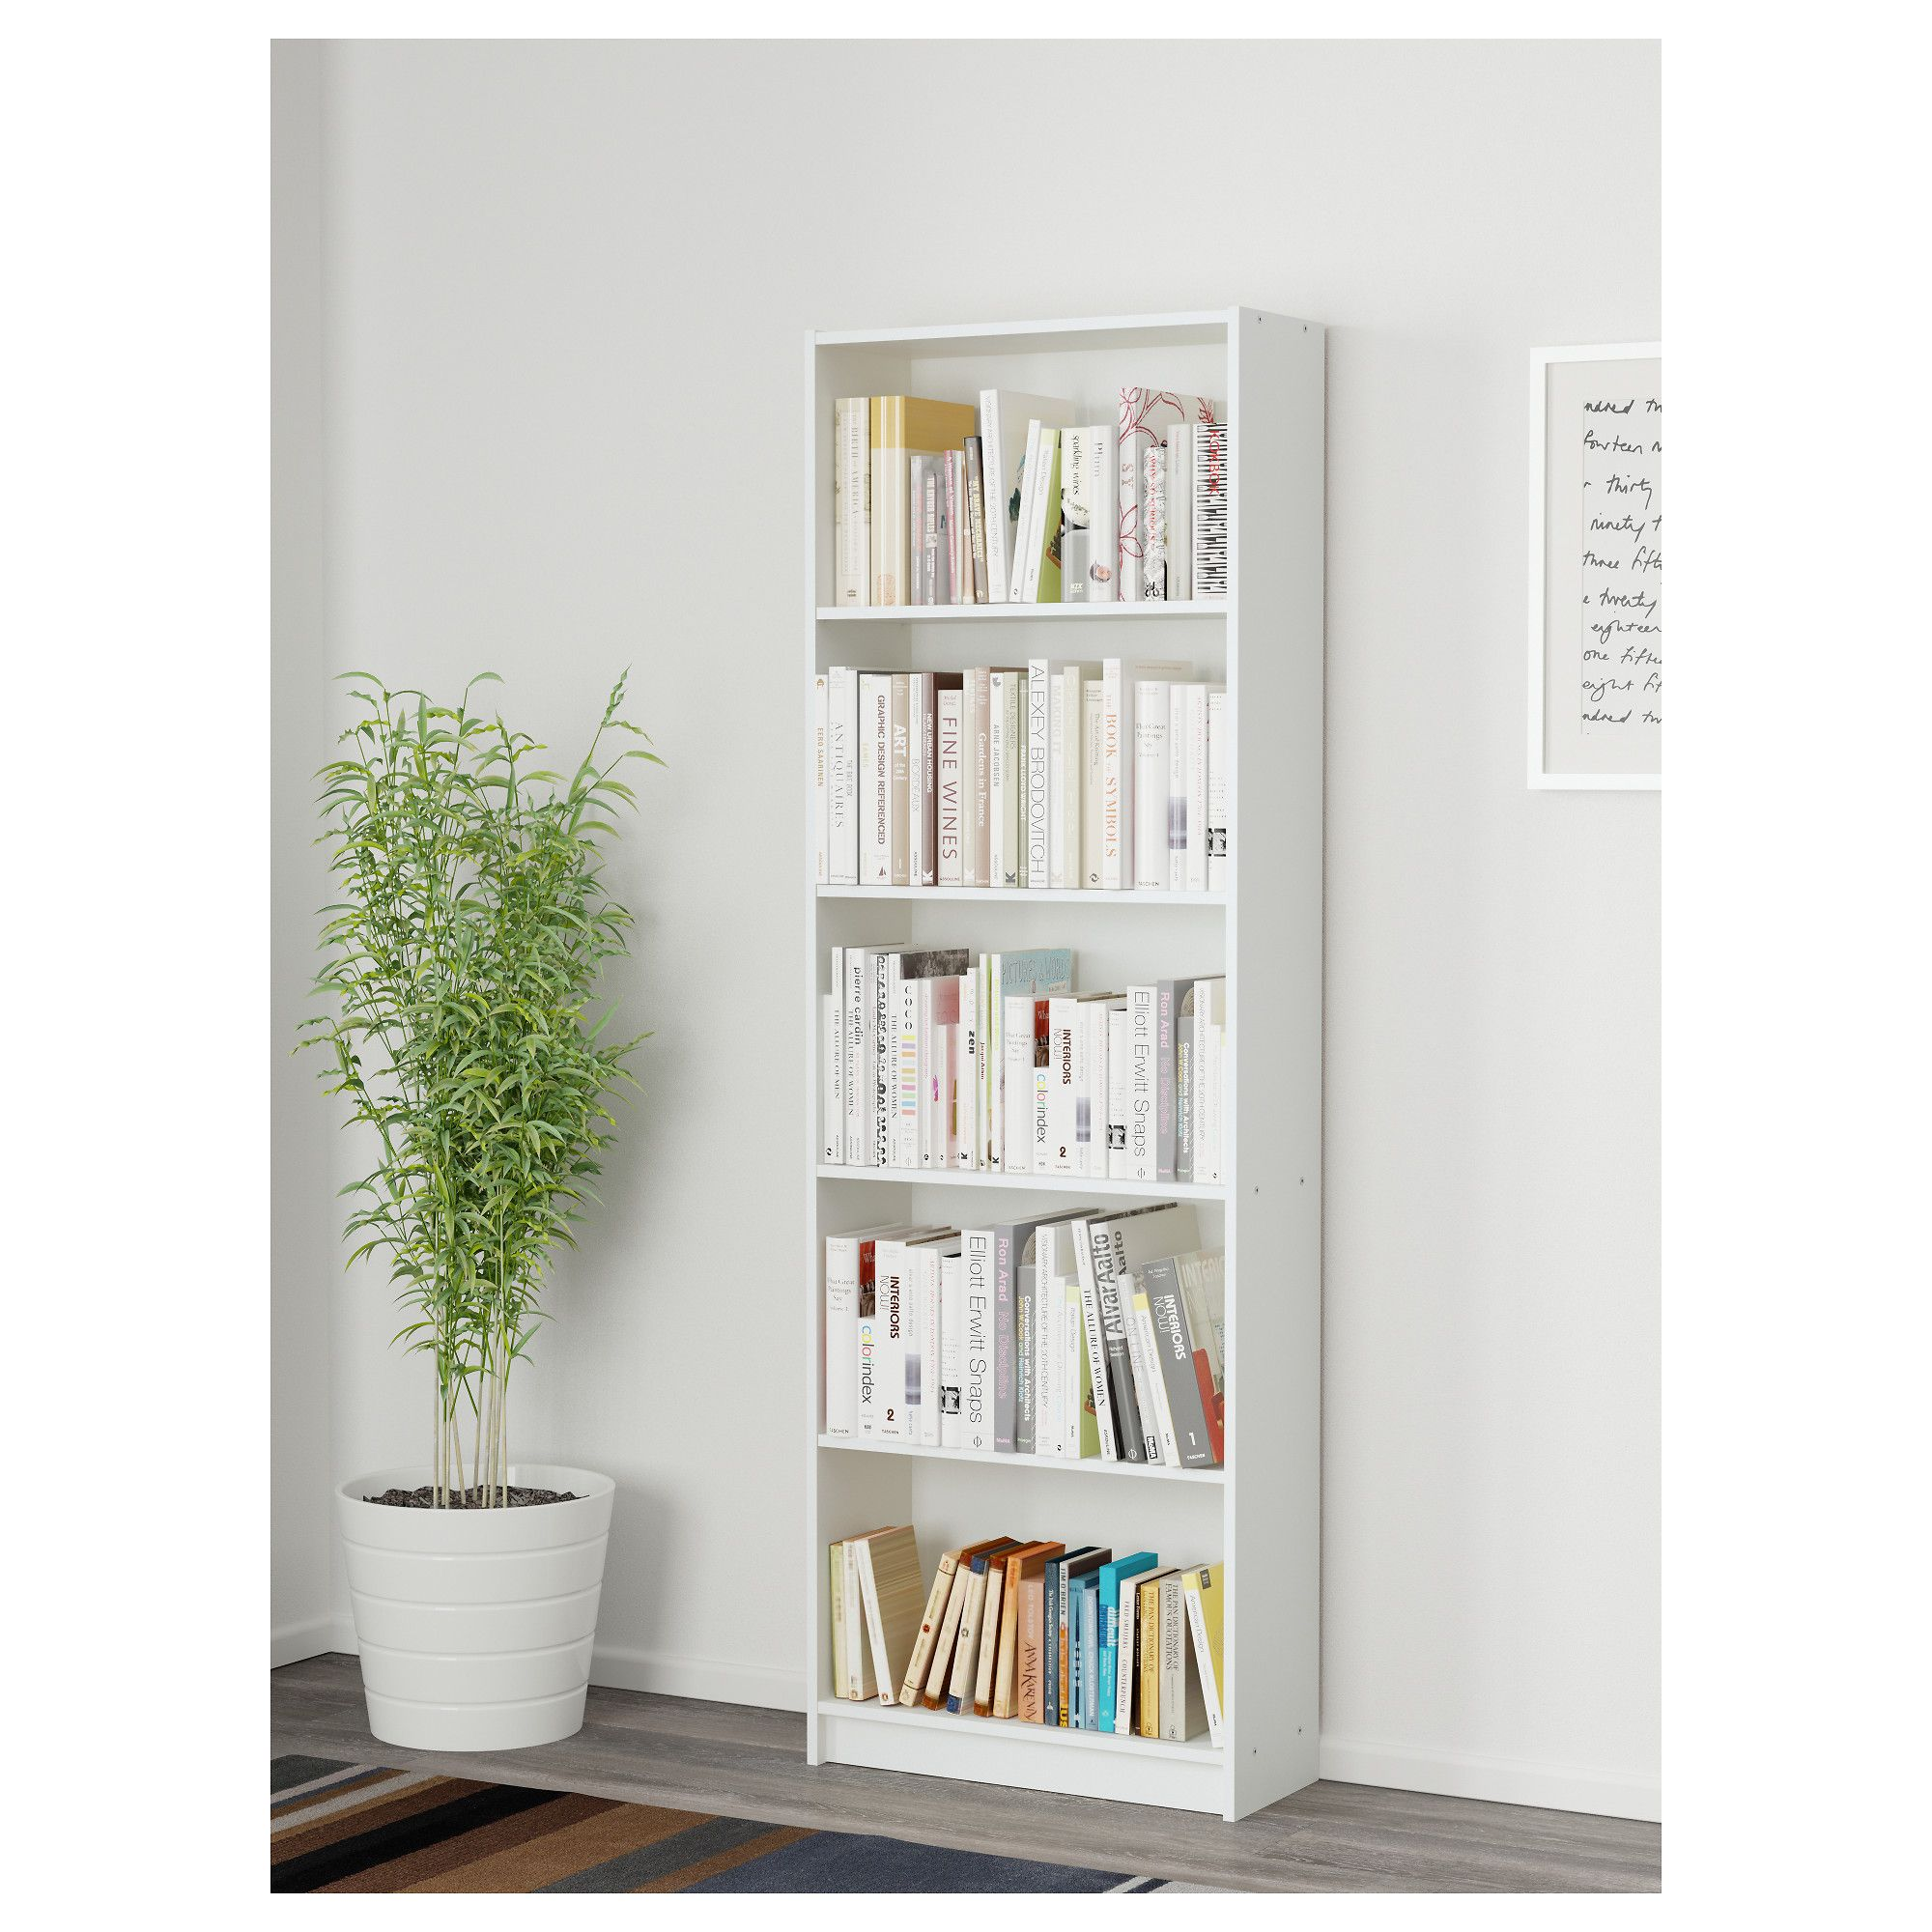 Billy Ikea Dimensions Gersby Bookcase White The Home I Build In My Mind Ikea Hemnes